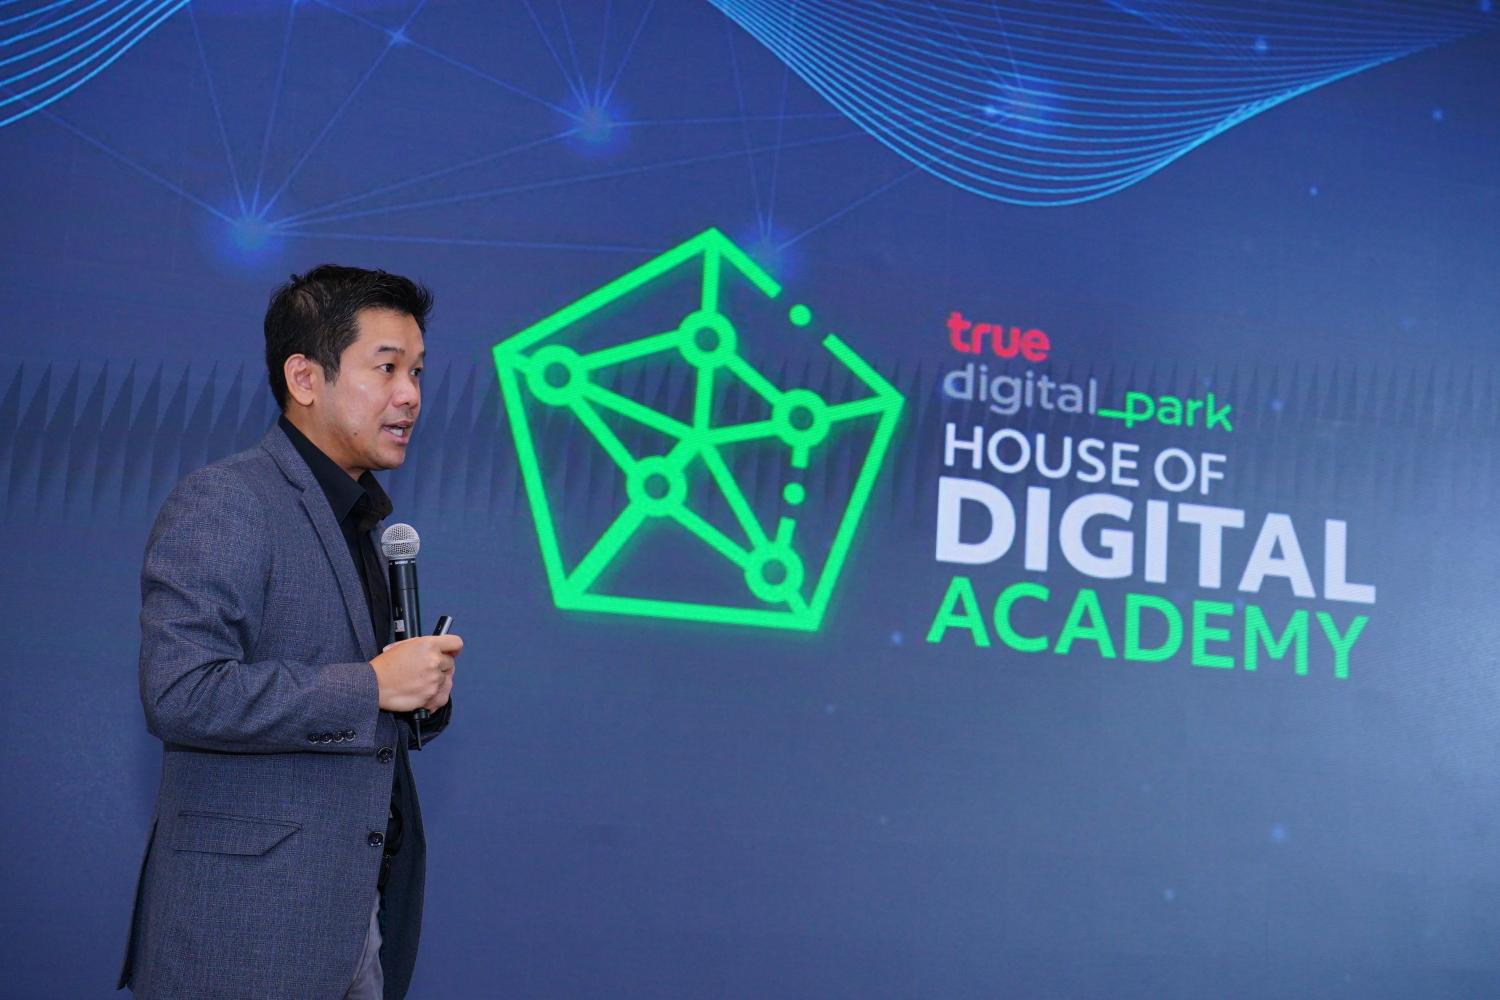 New digital academy joins tech enterprises